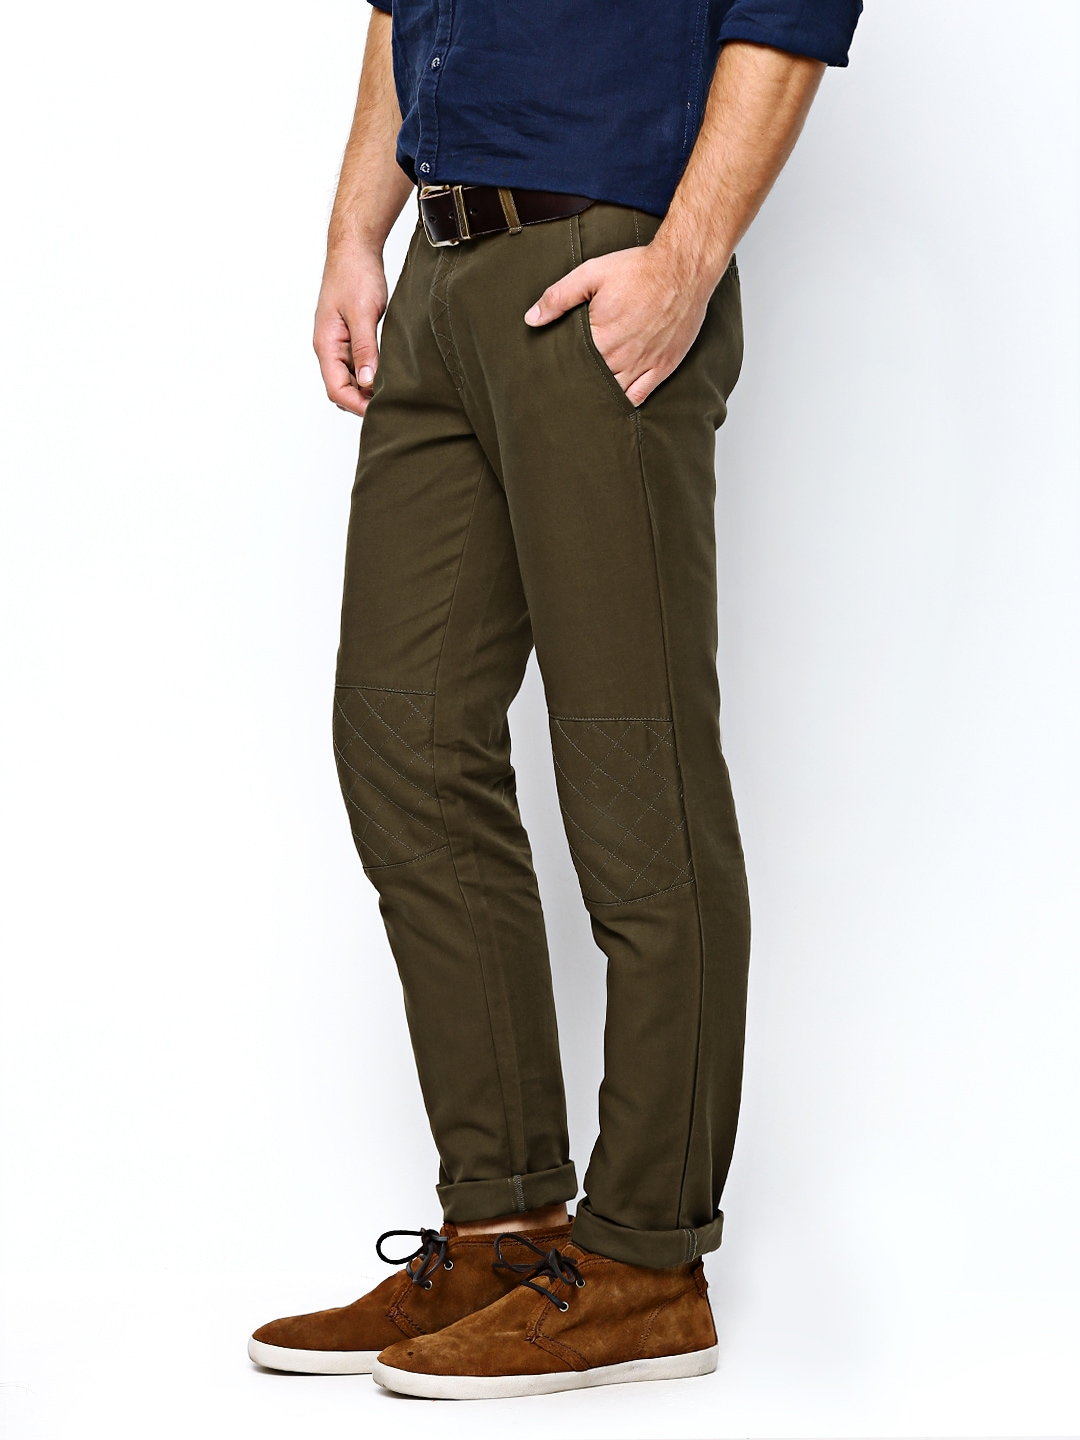 ca0a72067 Buy United Colors of Benetton Men Olive Green Casual Trousers (multicolor)  8251869 for men online in india on Myntra at Yebhi.com